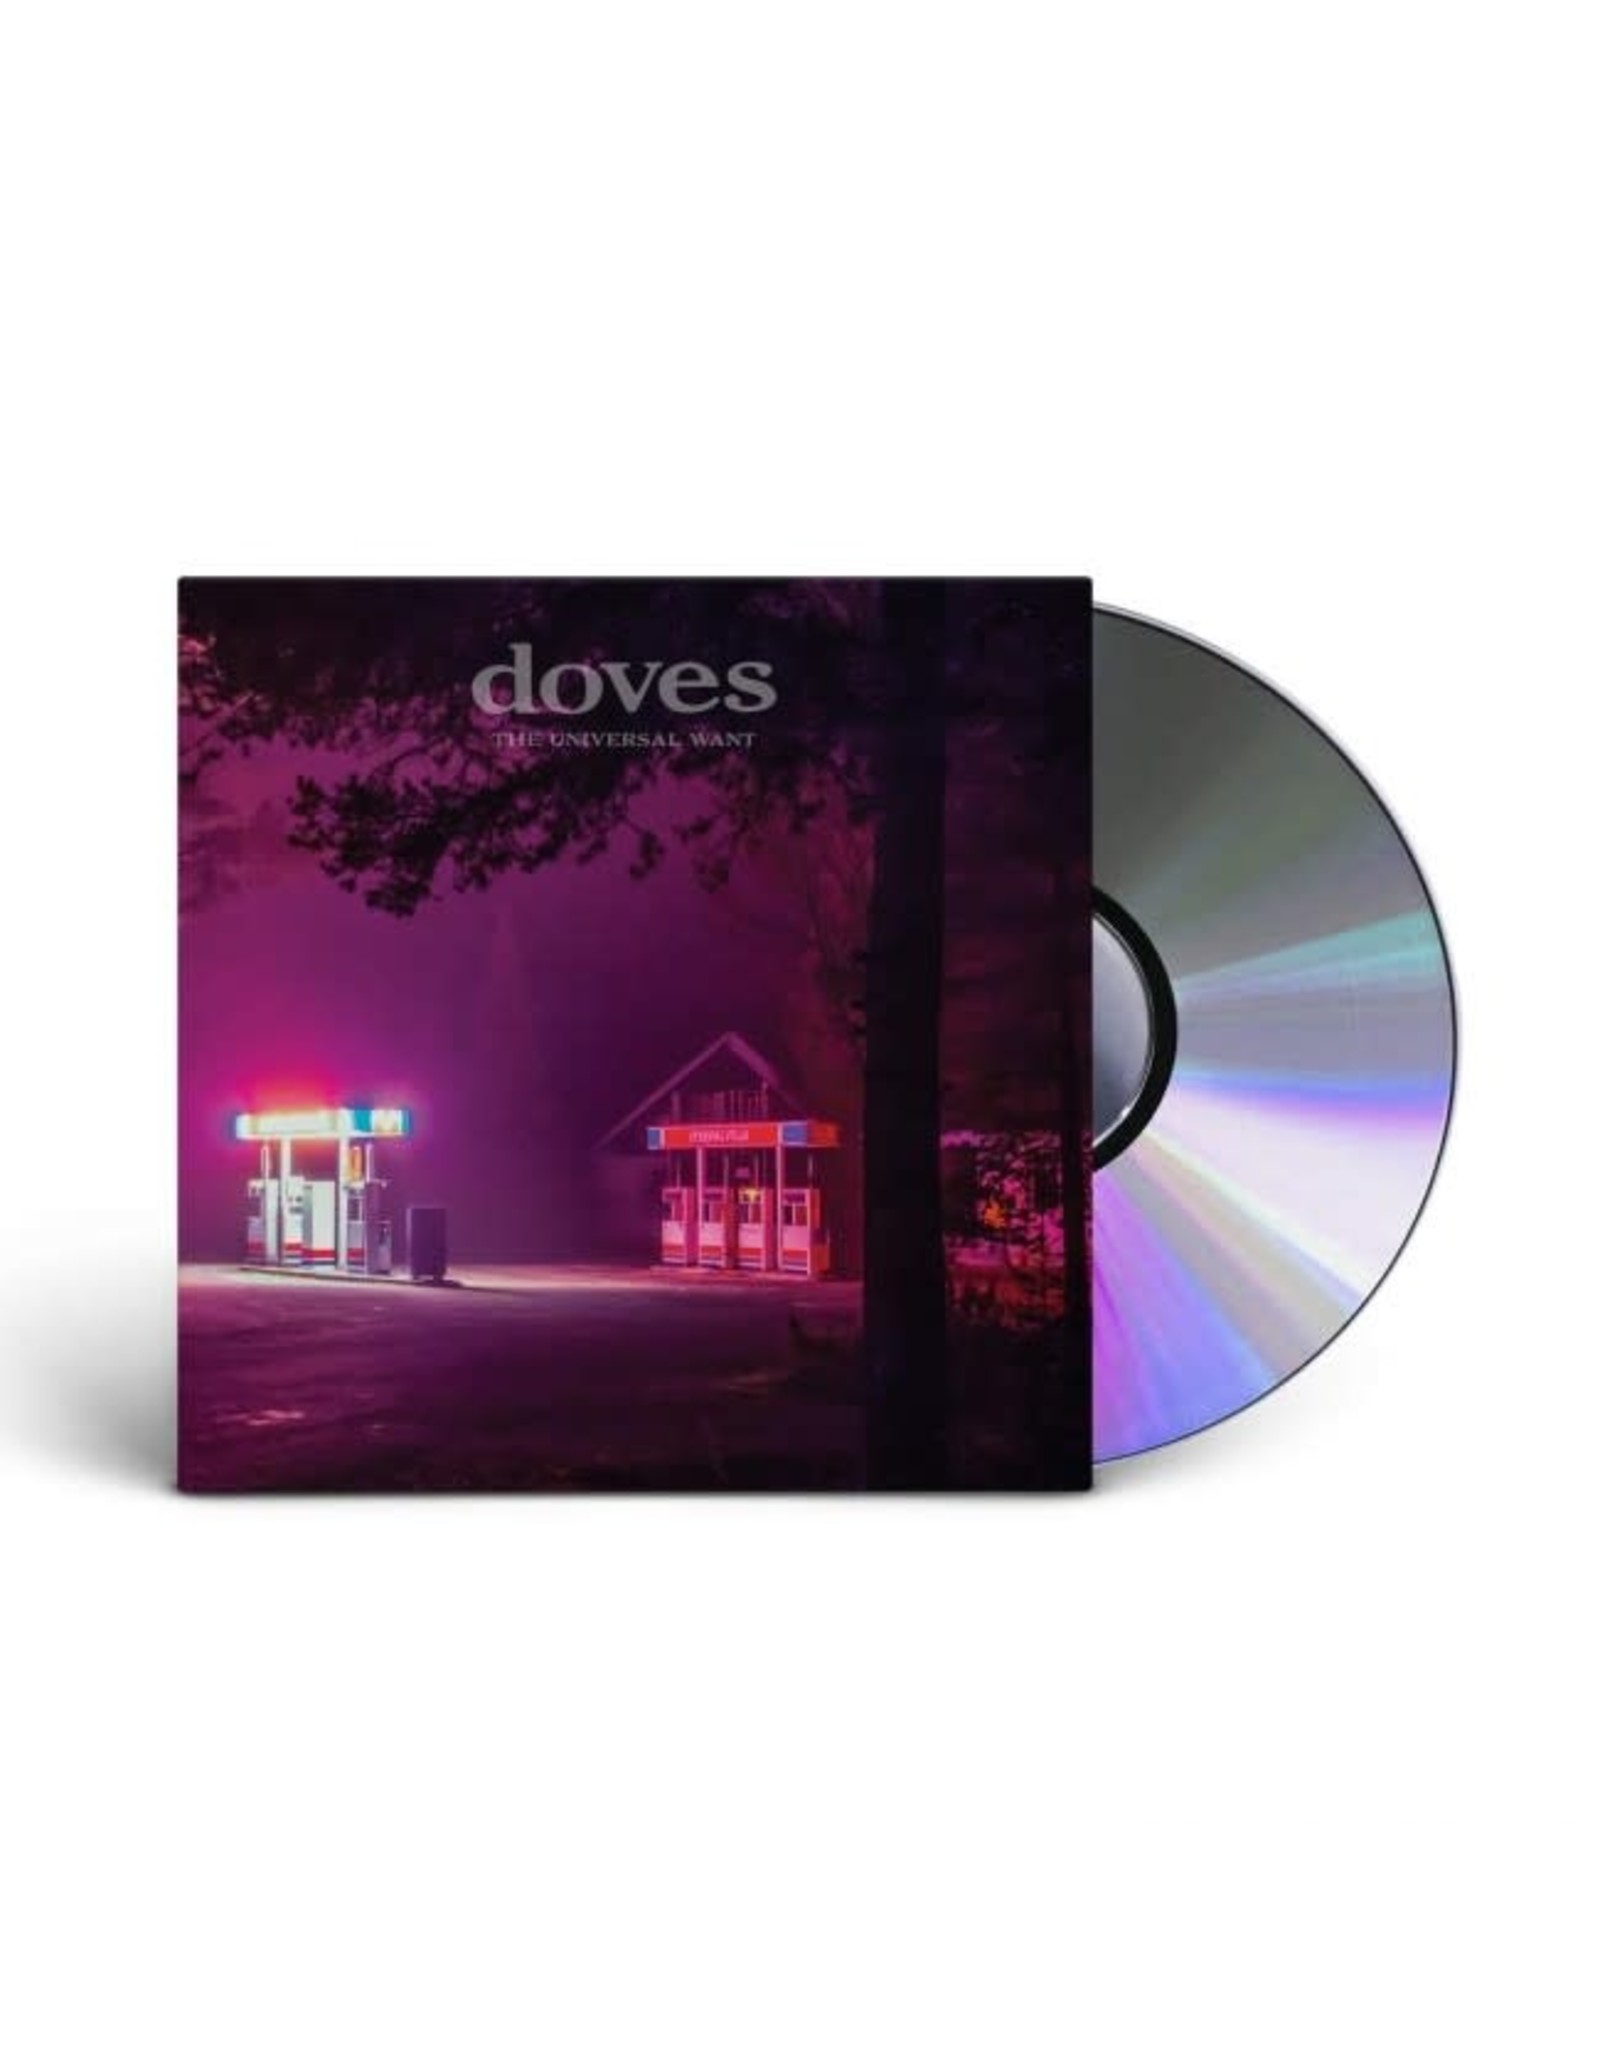 Doves - The Universal Mint CD